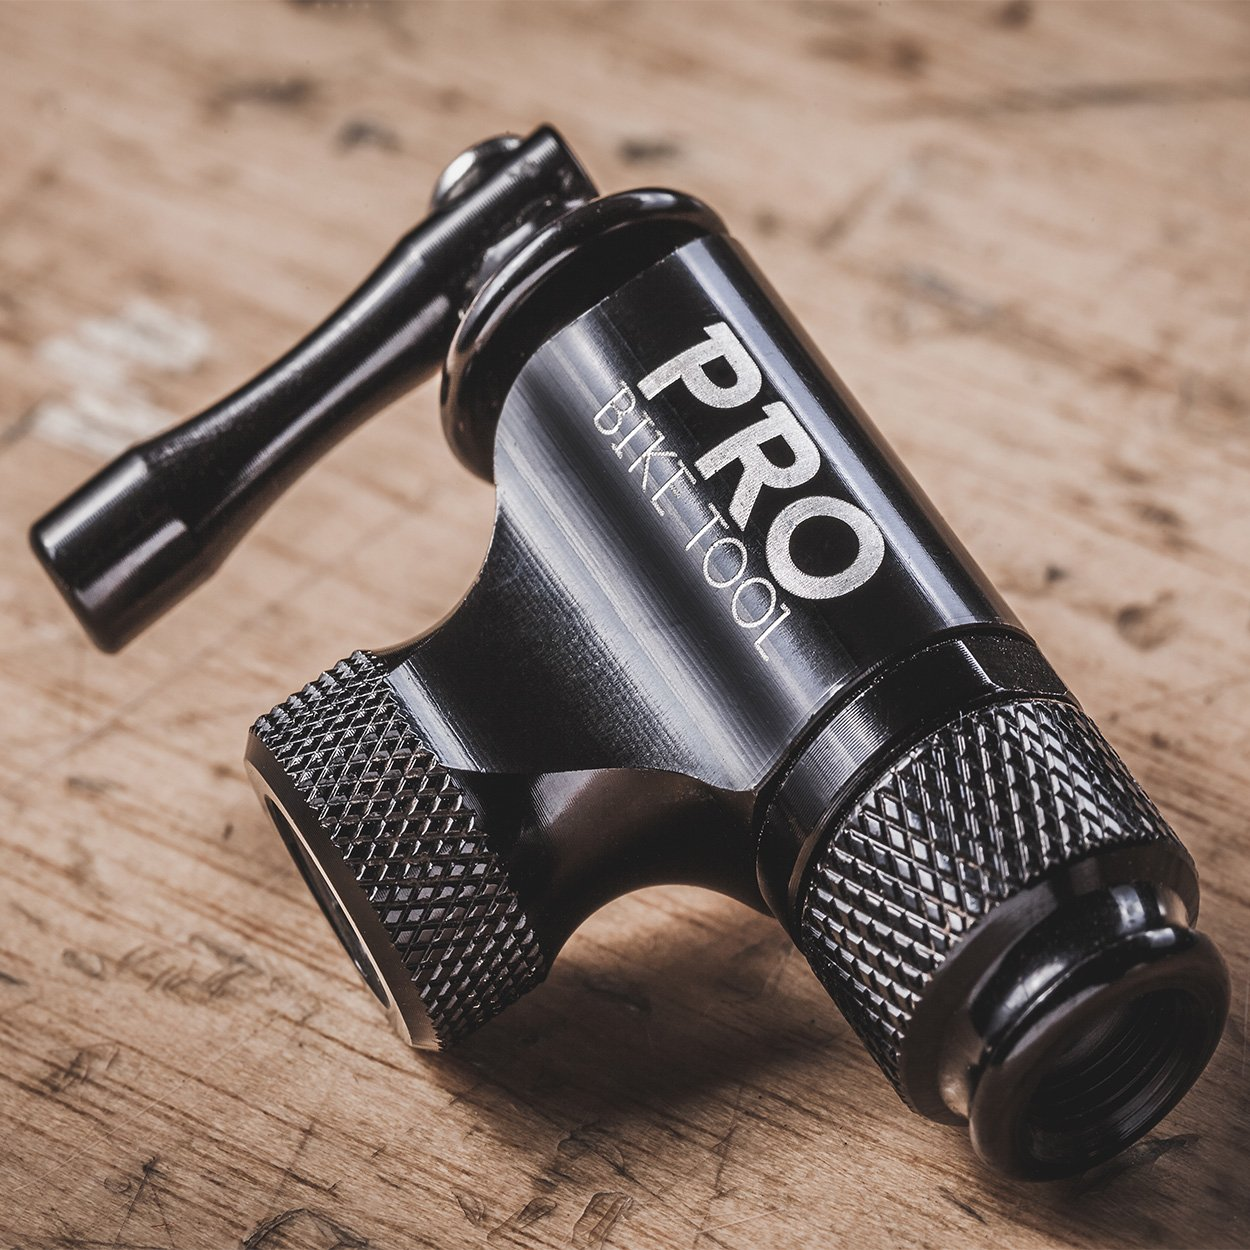 Pro Bike Tool CO2 Inflator - Limited Edition Black - Quick & Easy - Presta and Schrader Valve Compatible - Bicycle Tire Pump For Road and Mountain Bikes - Insulated Sleeve - No CO2 Cartridges Included by Pro Bike Tool (Image #2)